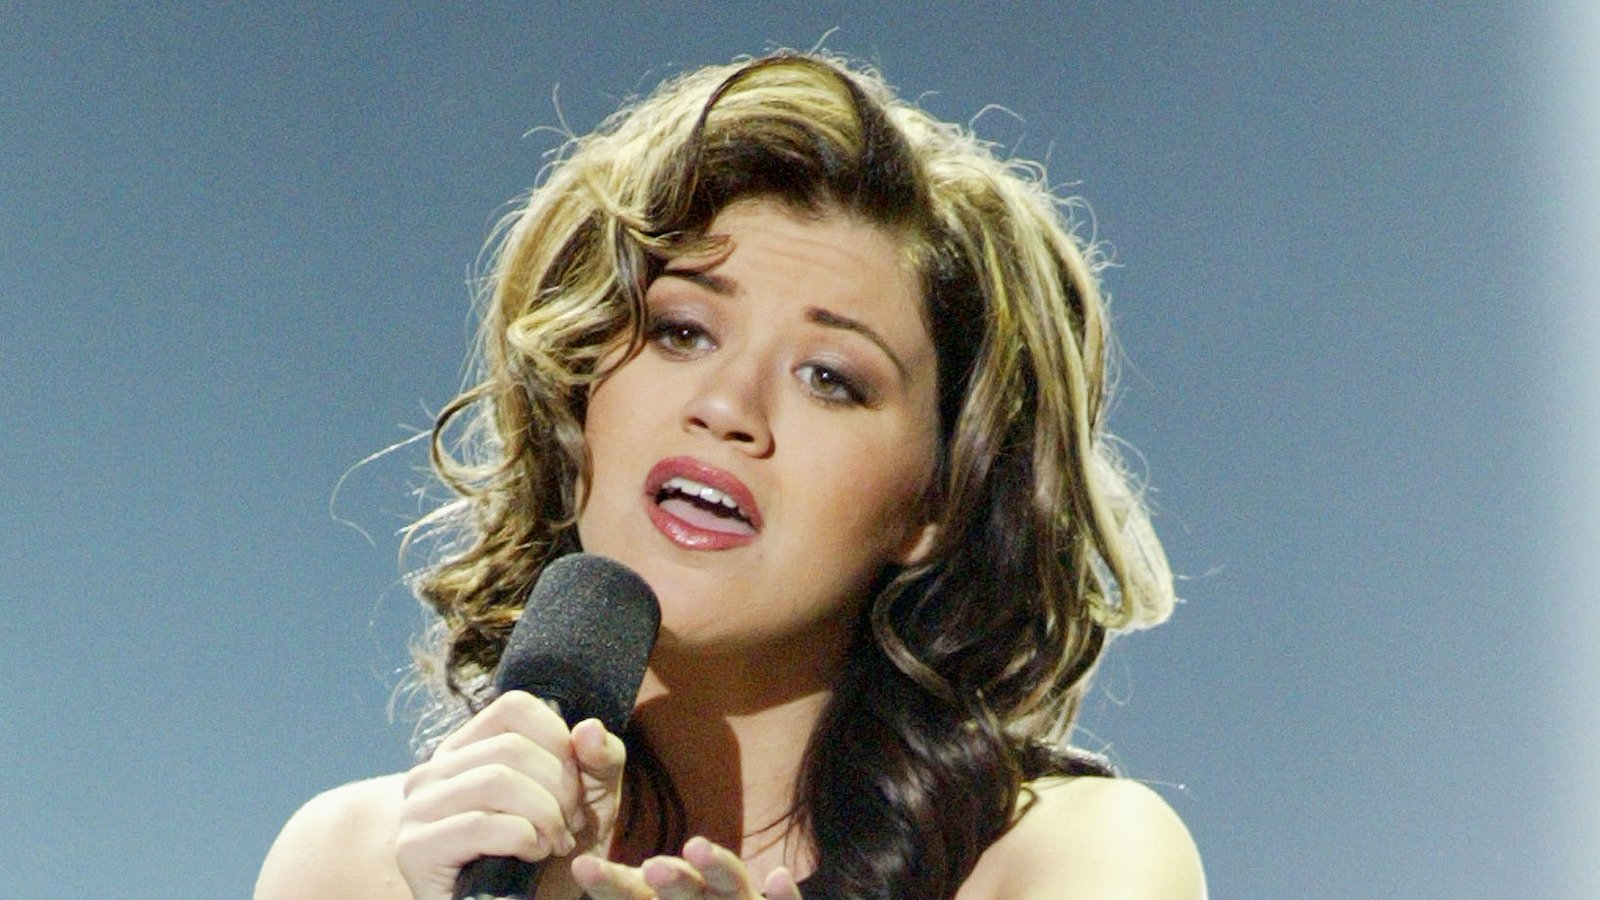 Tragic Things About Kelly Clarkson